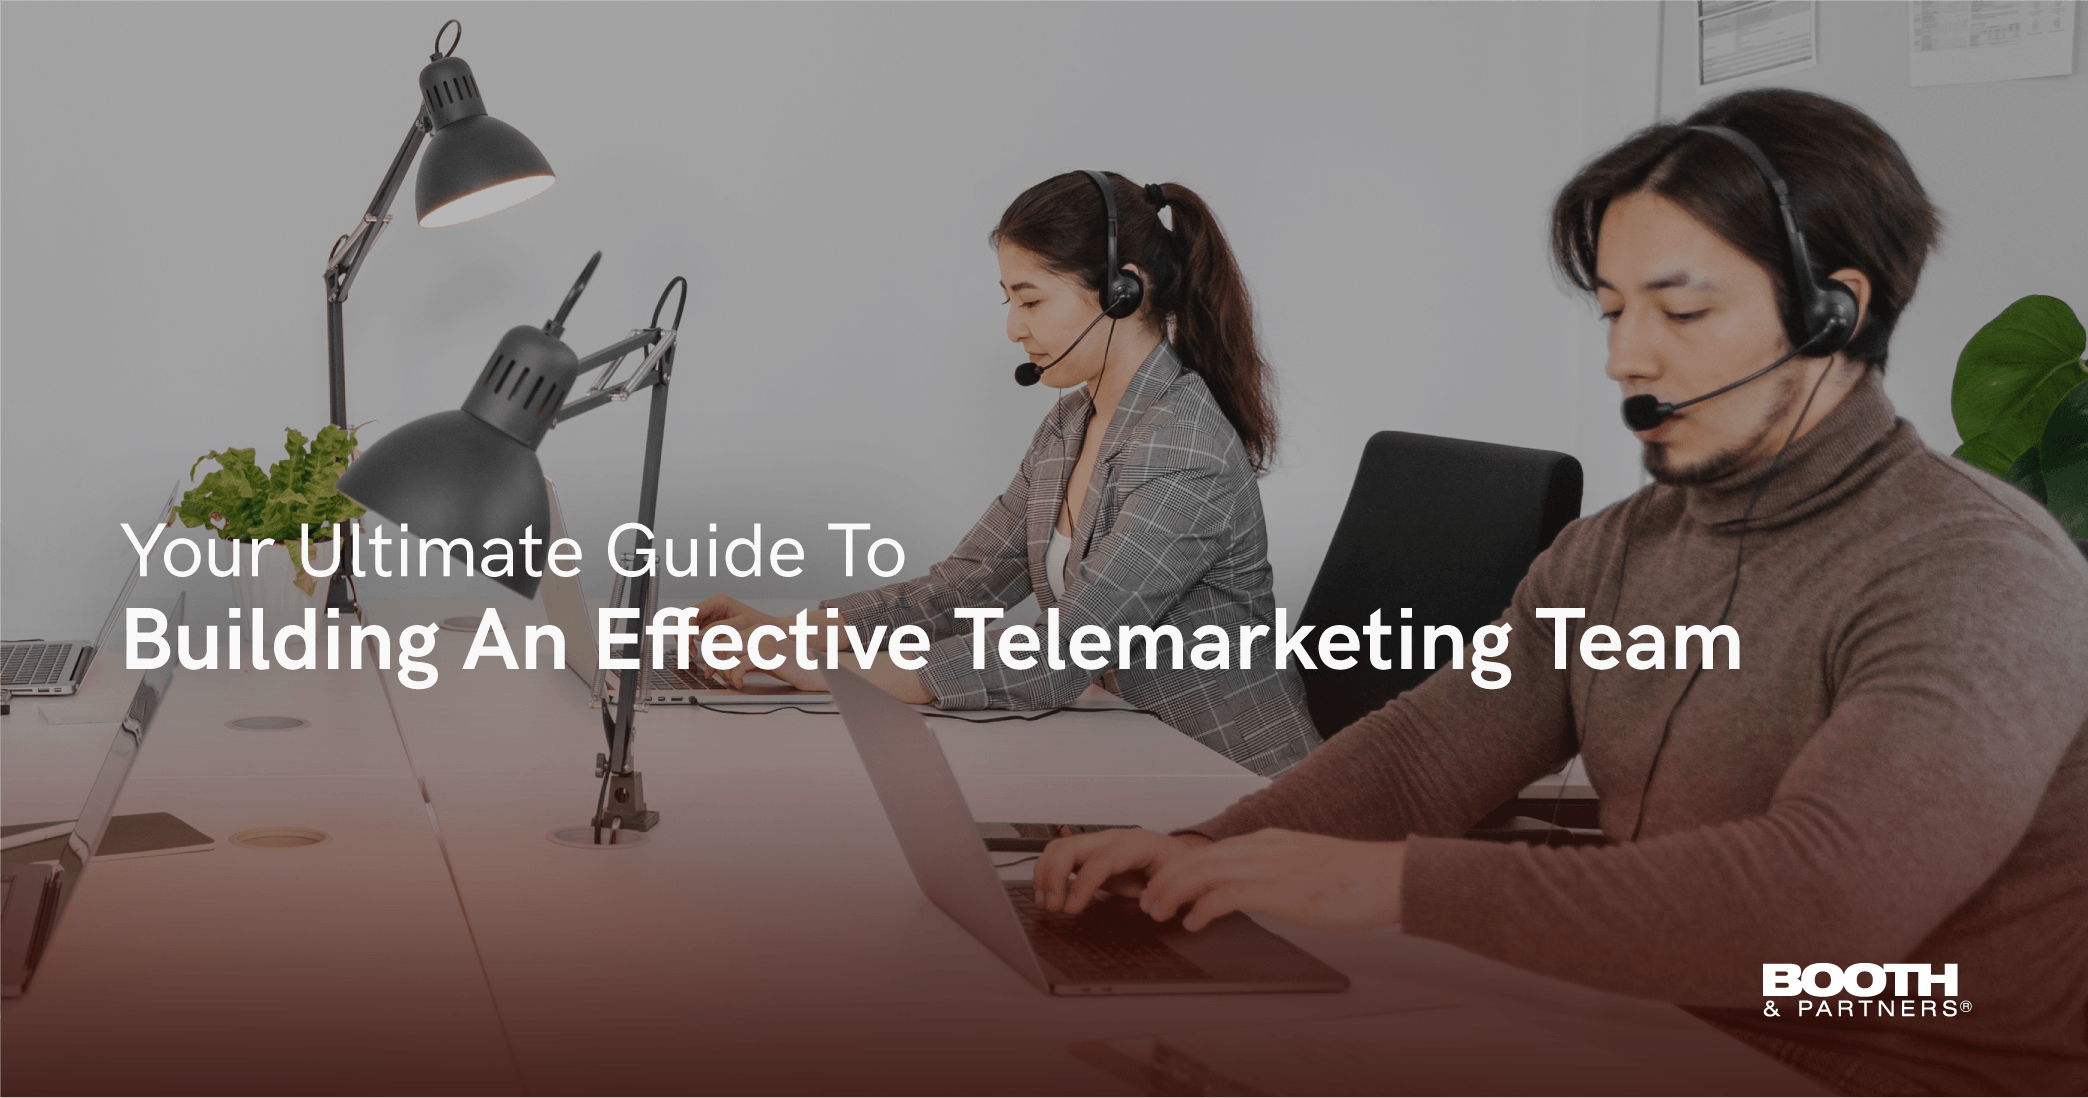 Your Ultimate Guide To Building An Effective Telemarketing Team